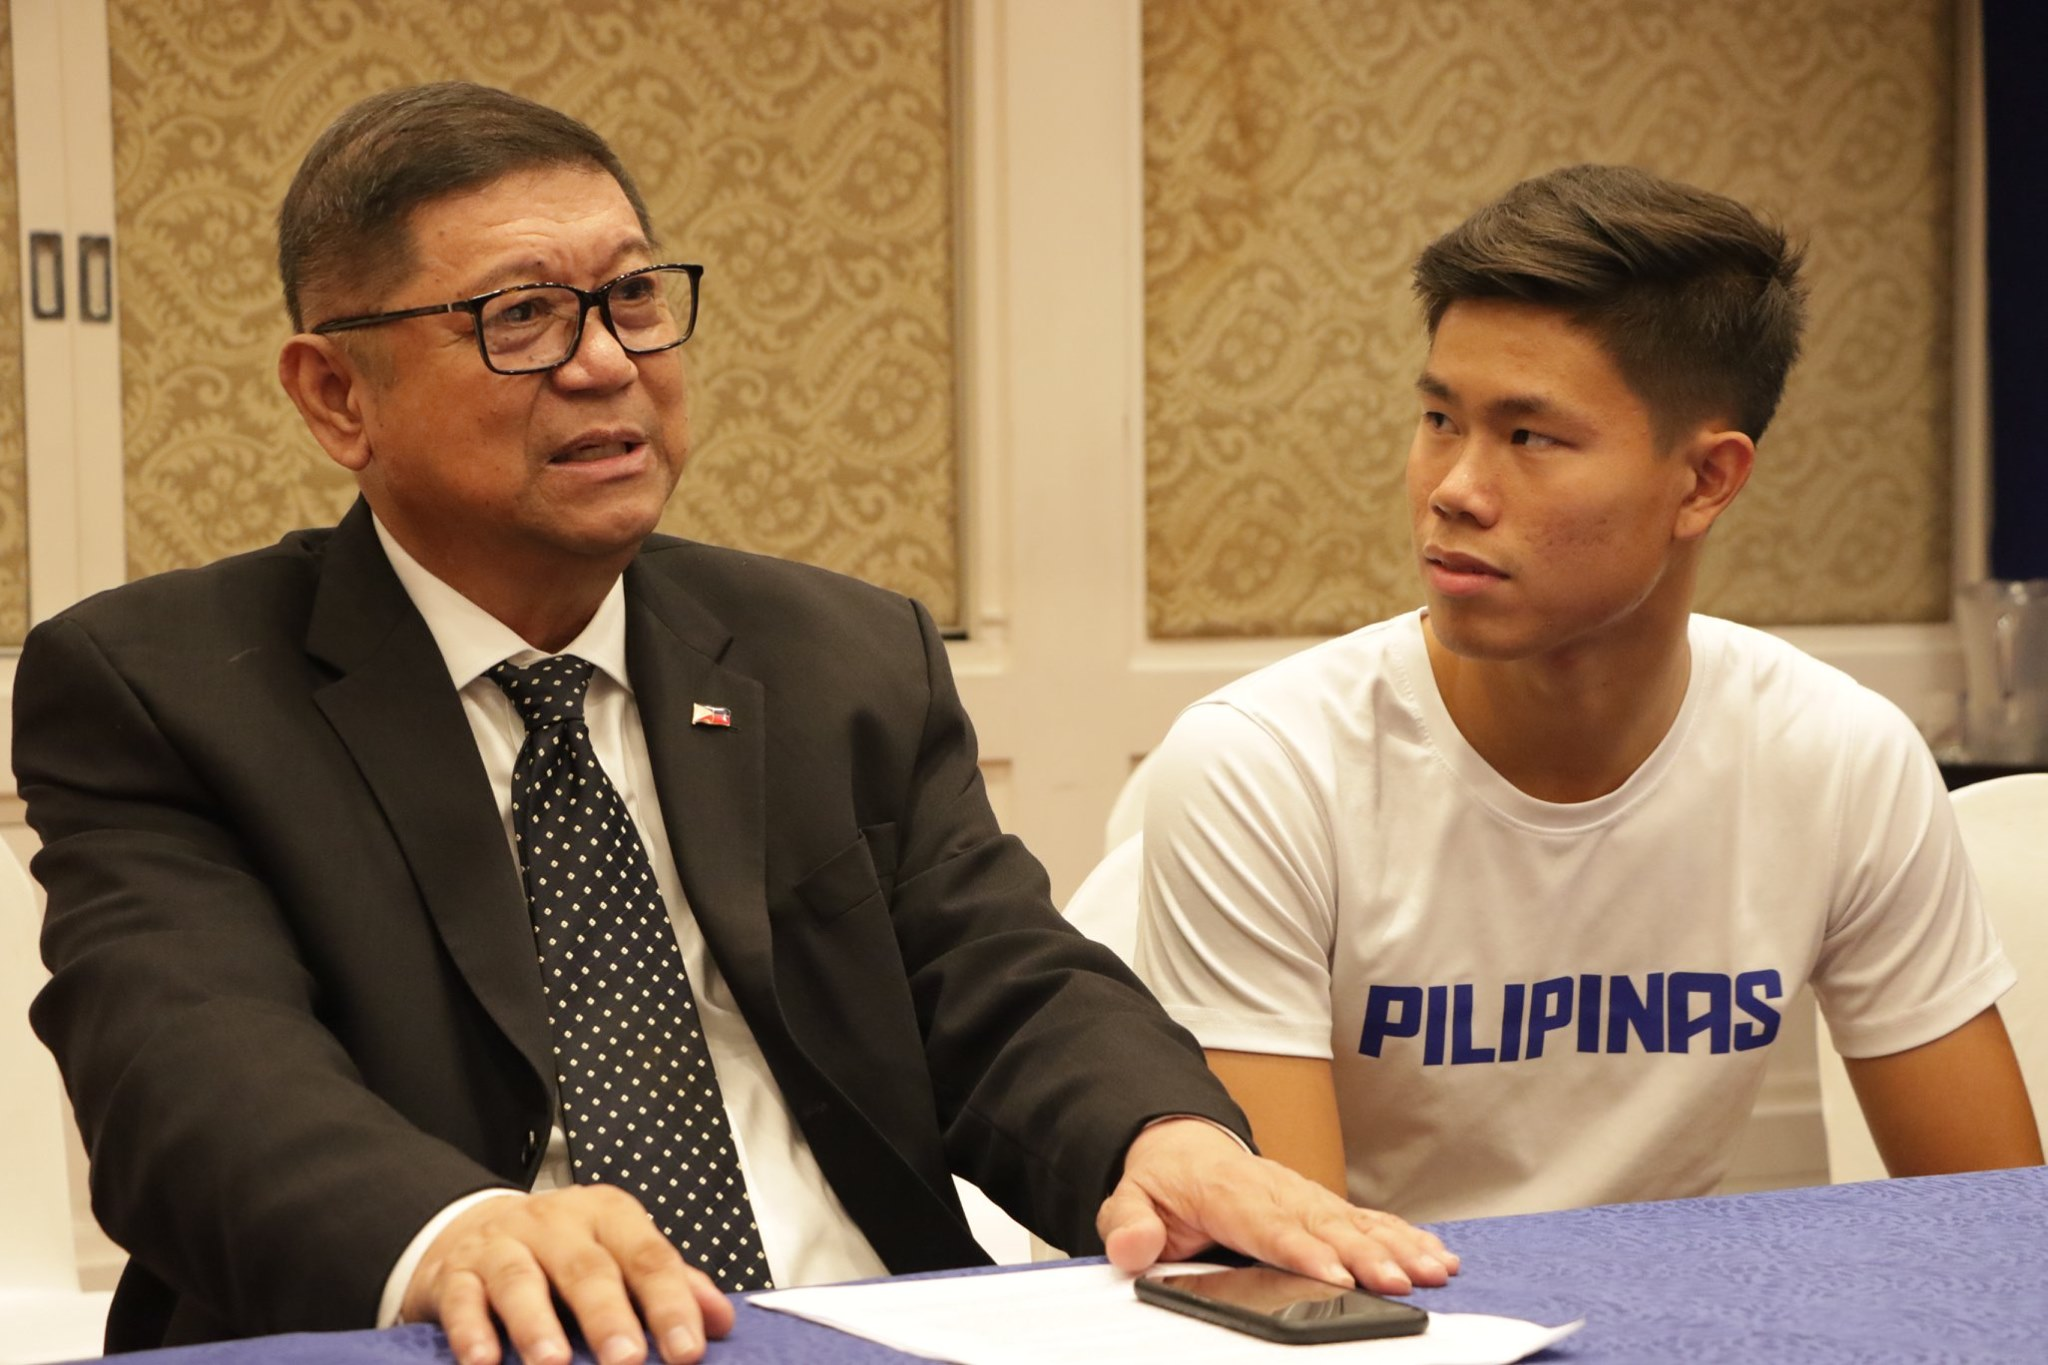 Nominations for PH Sports Hall of Fame starts